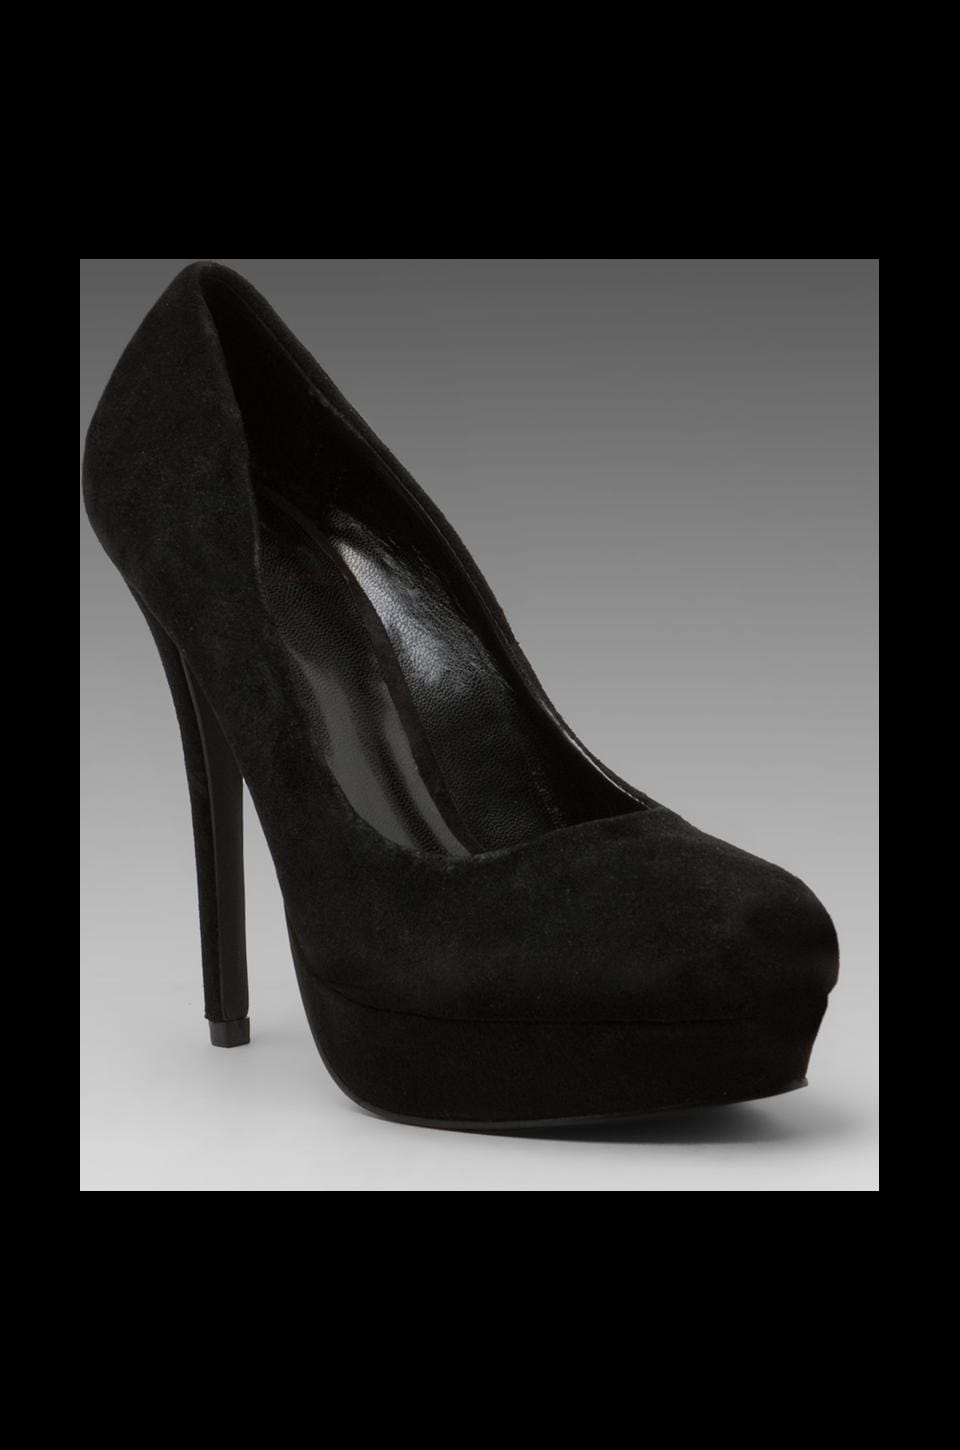 Kelsi Dagger Lizzy Pump Suede in Black